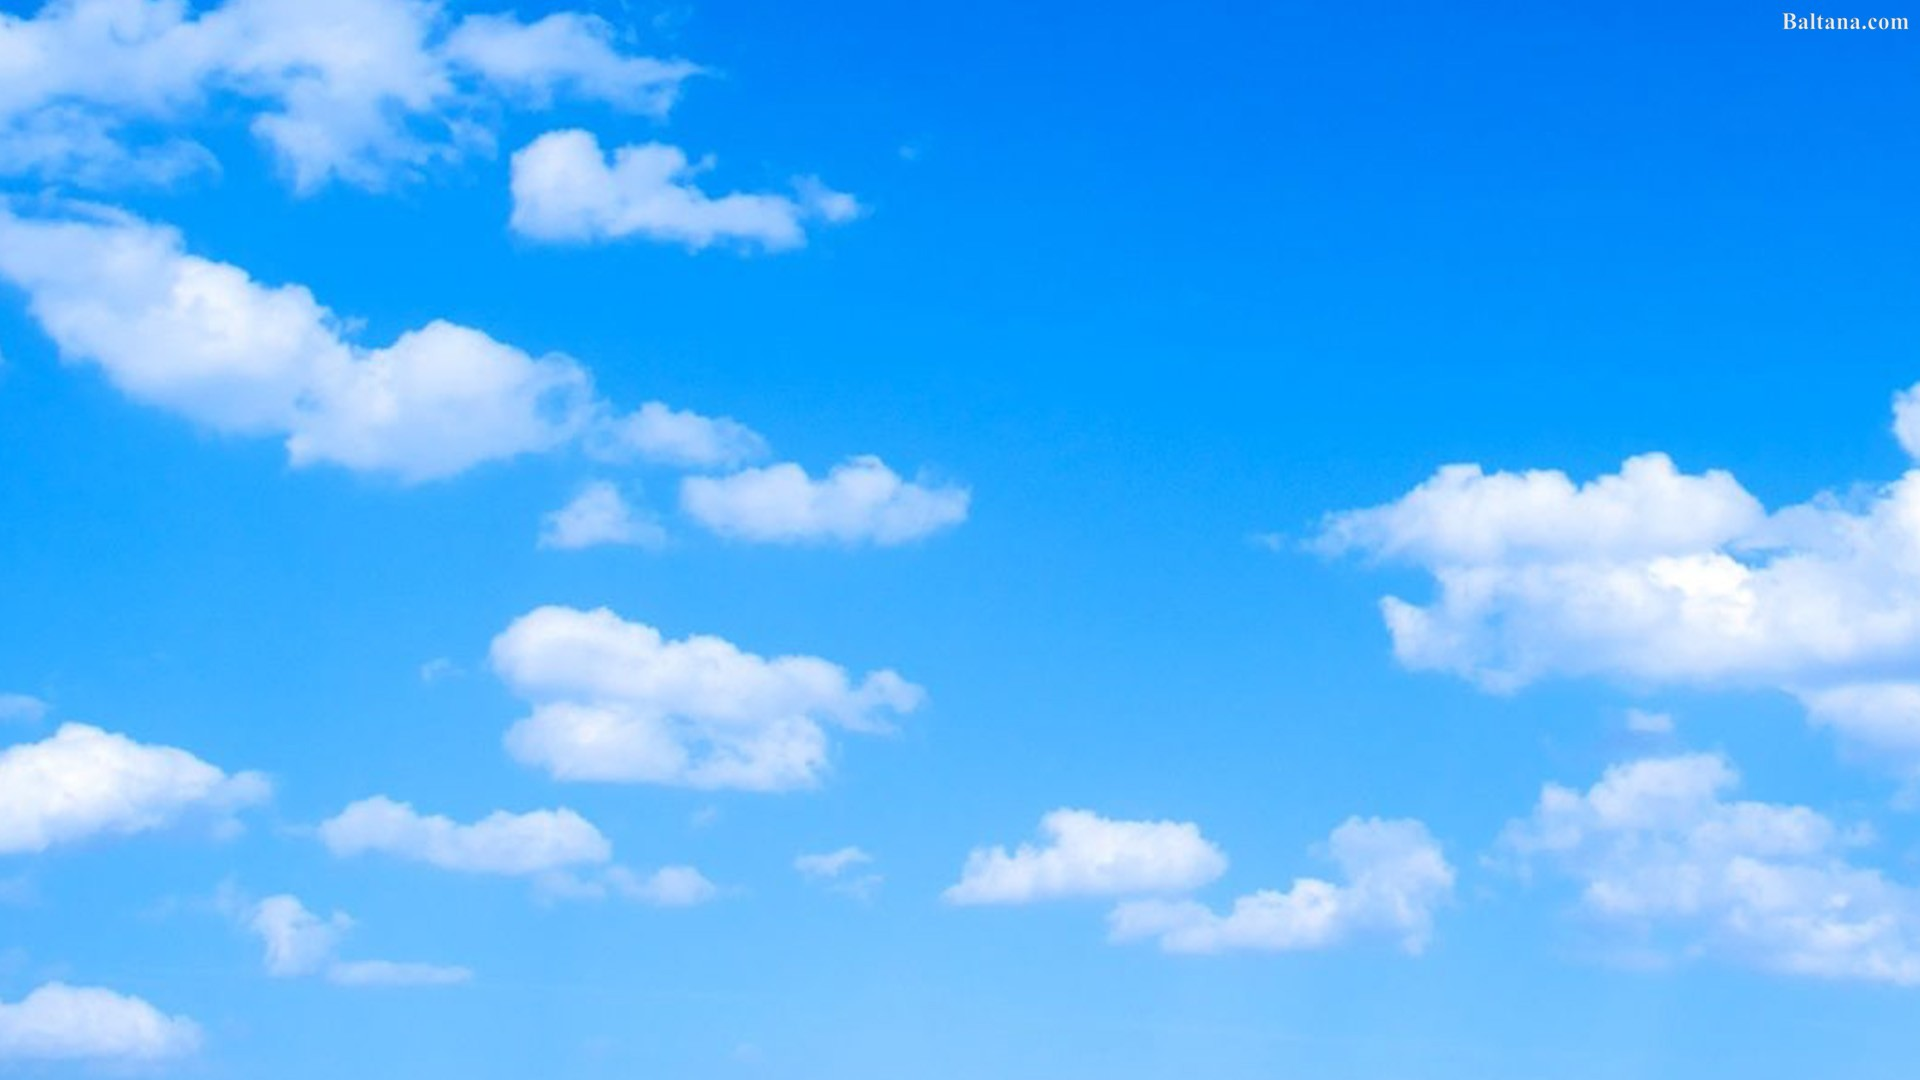 Clouds Wallpaper Hd Blue Sky With Few Clouds 142373 Hd Wallpaper Backgrounds Download